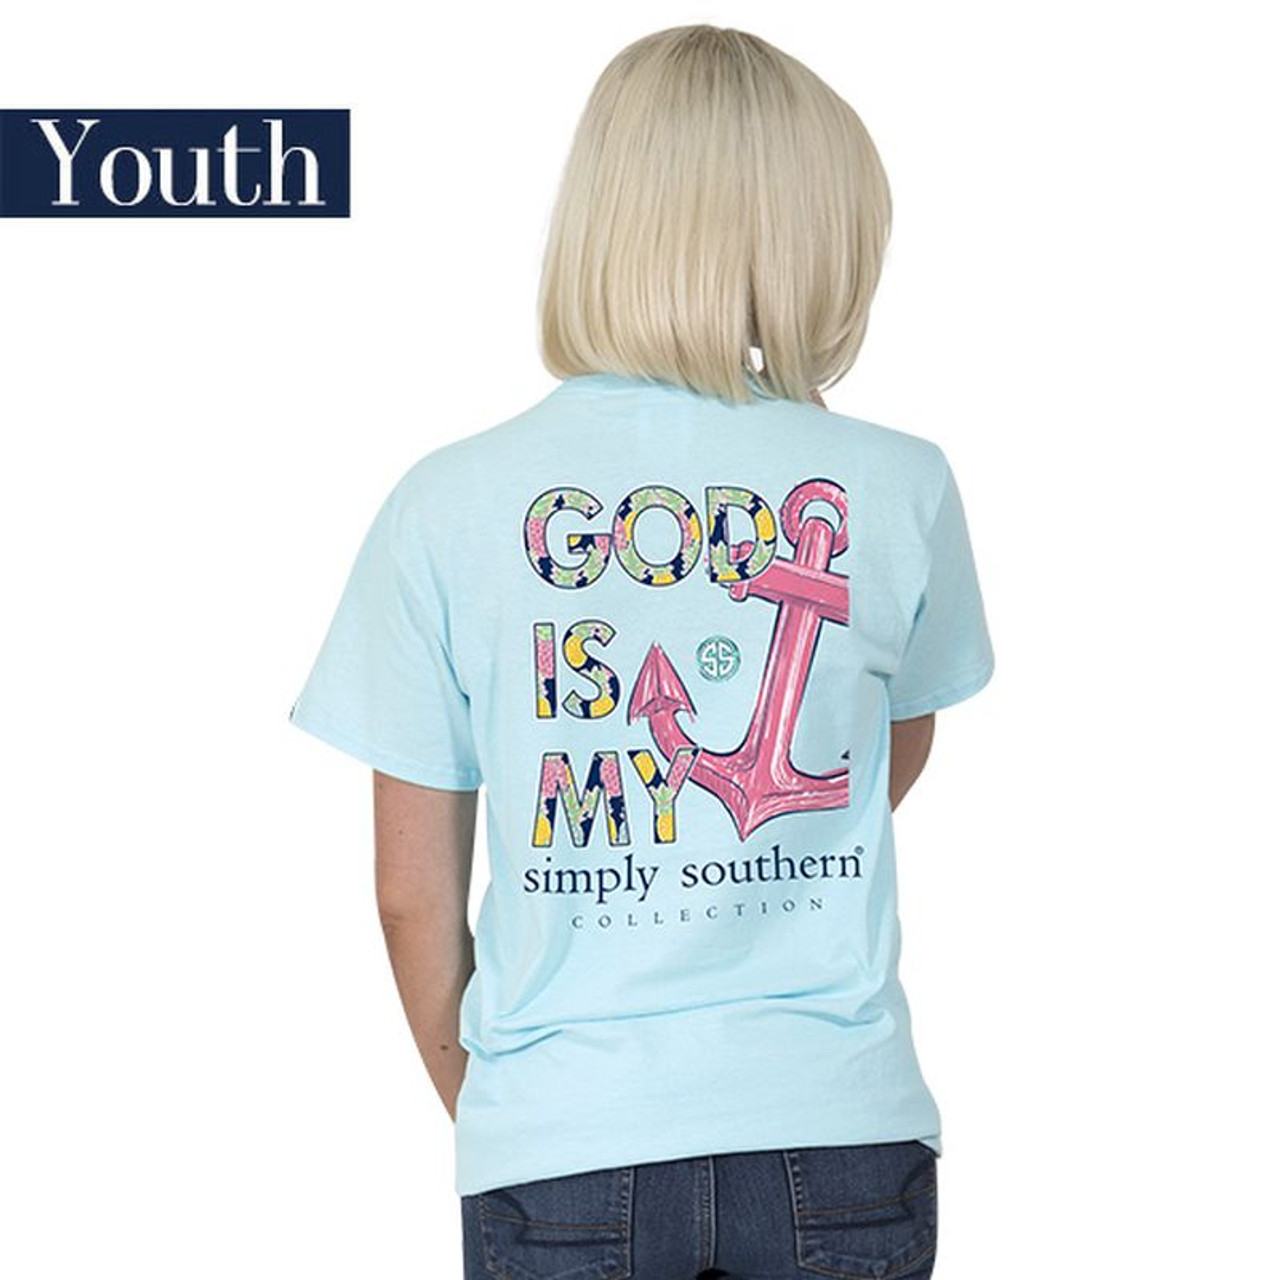 2b0592c1f979 YOUTH God Is My Anchor 2018 Simply Southern Tee Shirt - OutdoorWood